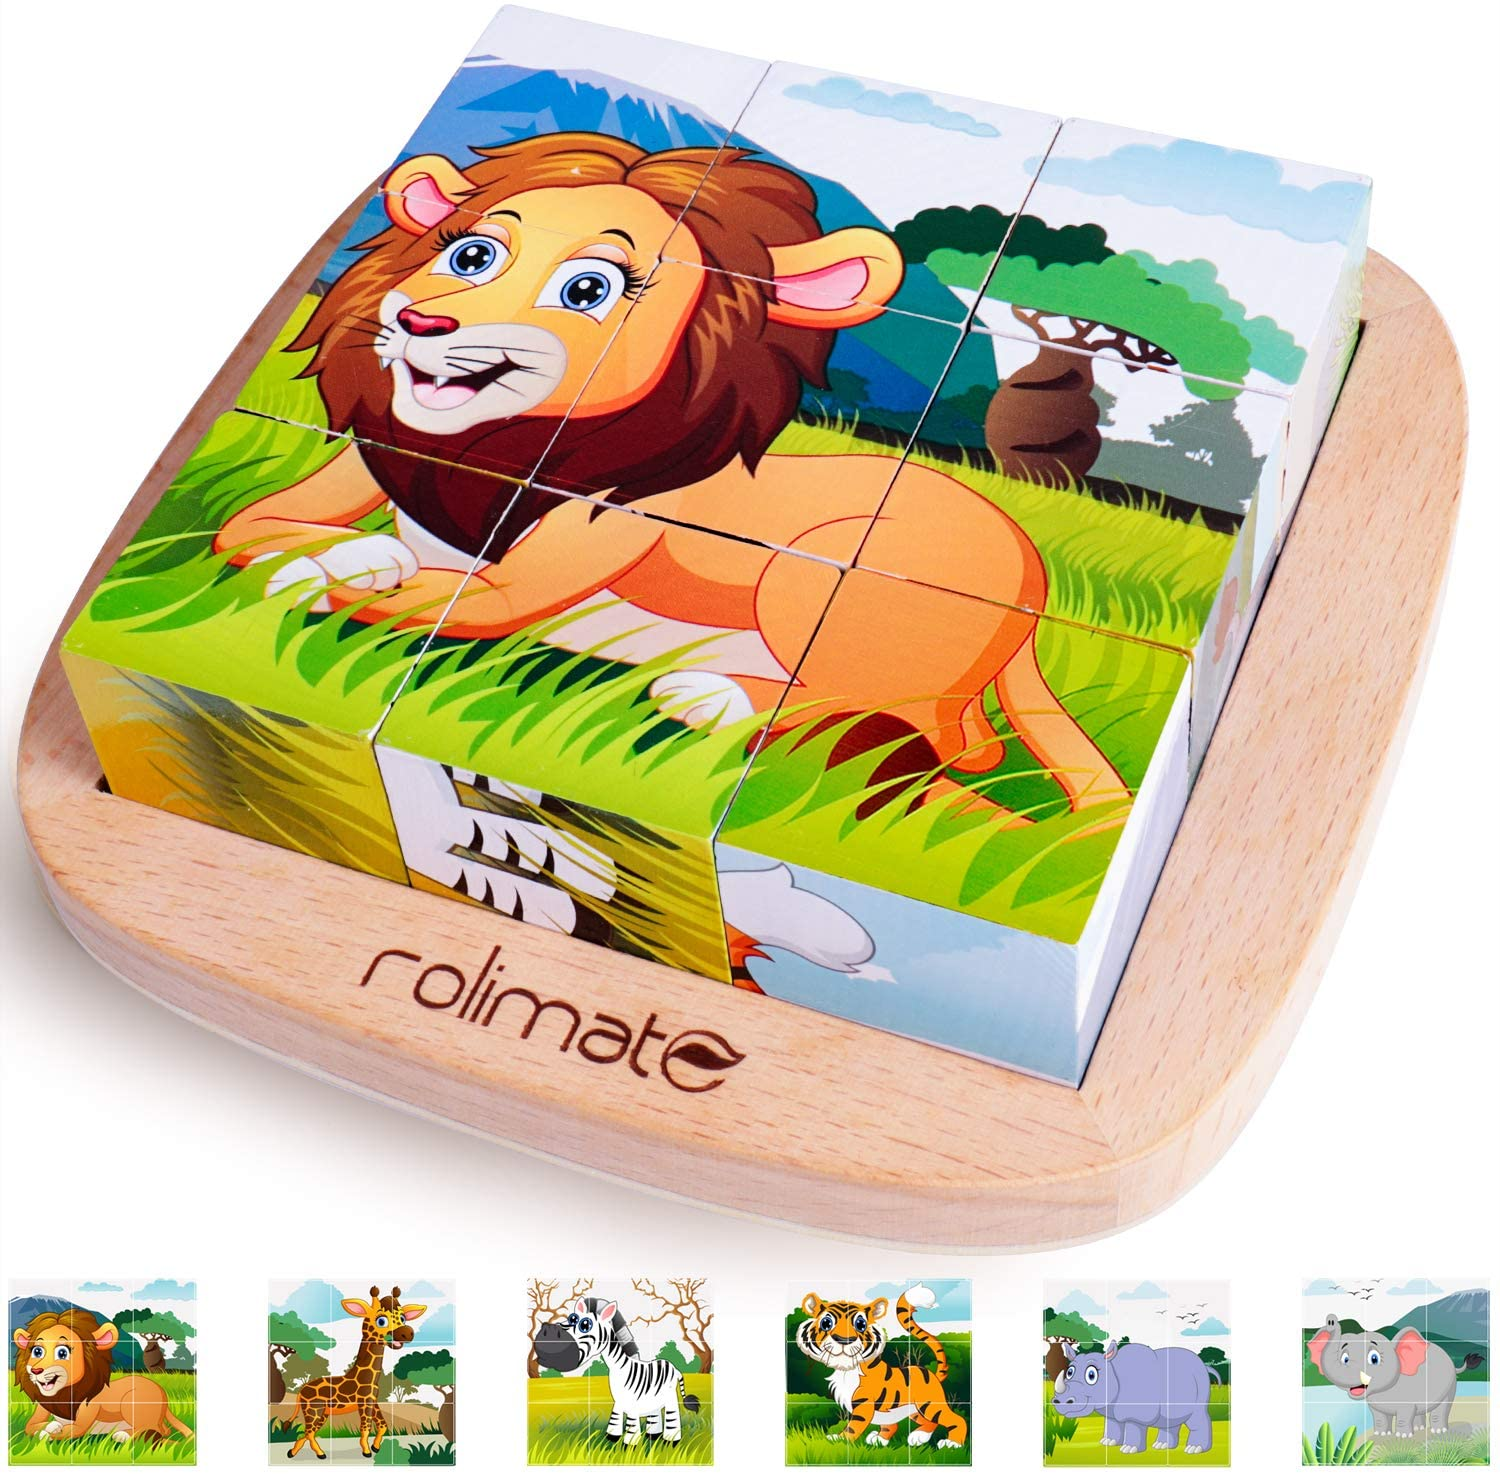 6 in 1 Wooden Block Puzzle Animal Cube Puzzle for 2 3 4+ Years Boy Girl Educational Toys Montessori Toys for Toddlers Jigsaw Puzzle with Puzzle Tray: Toys & Games